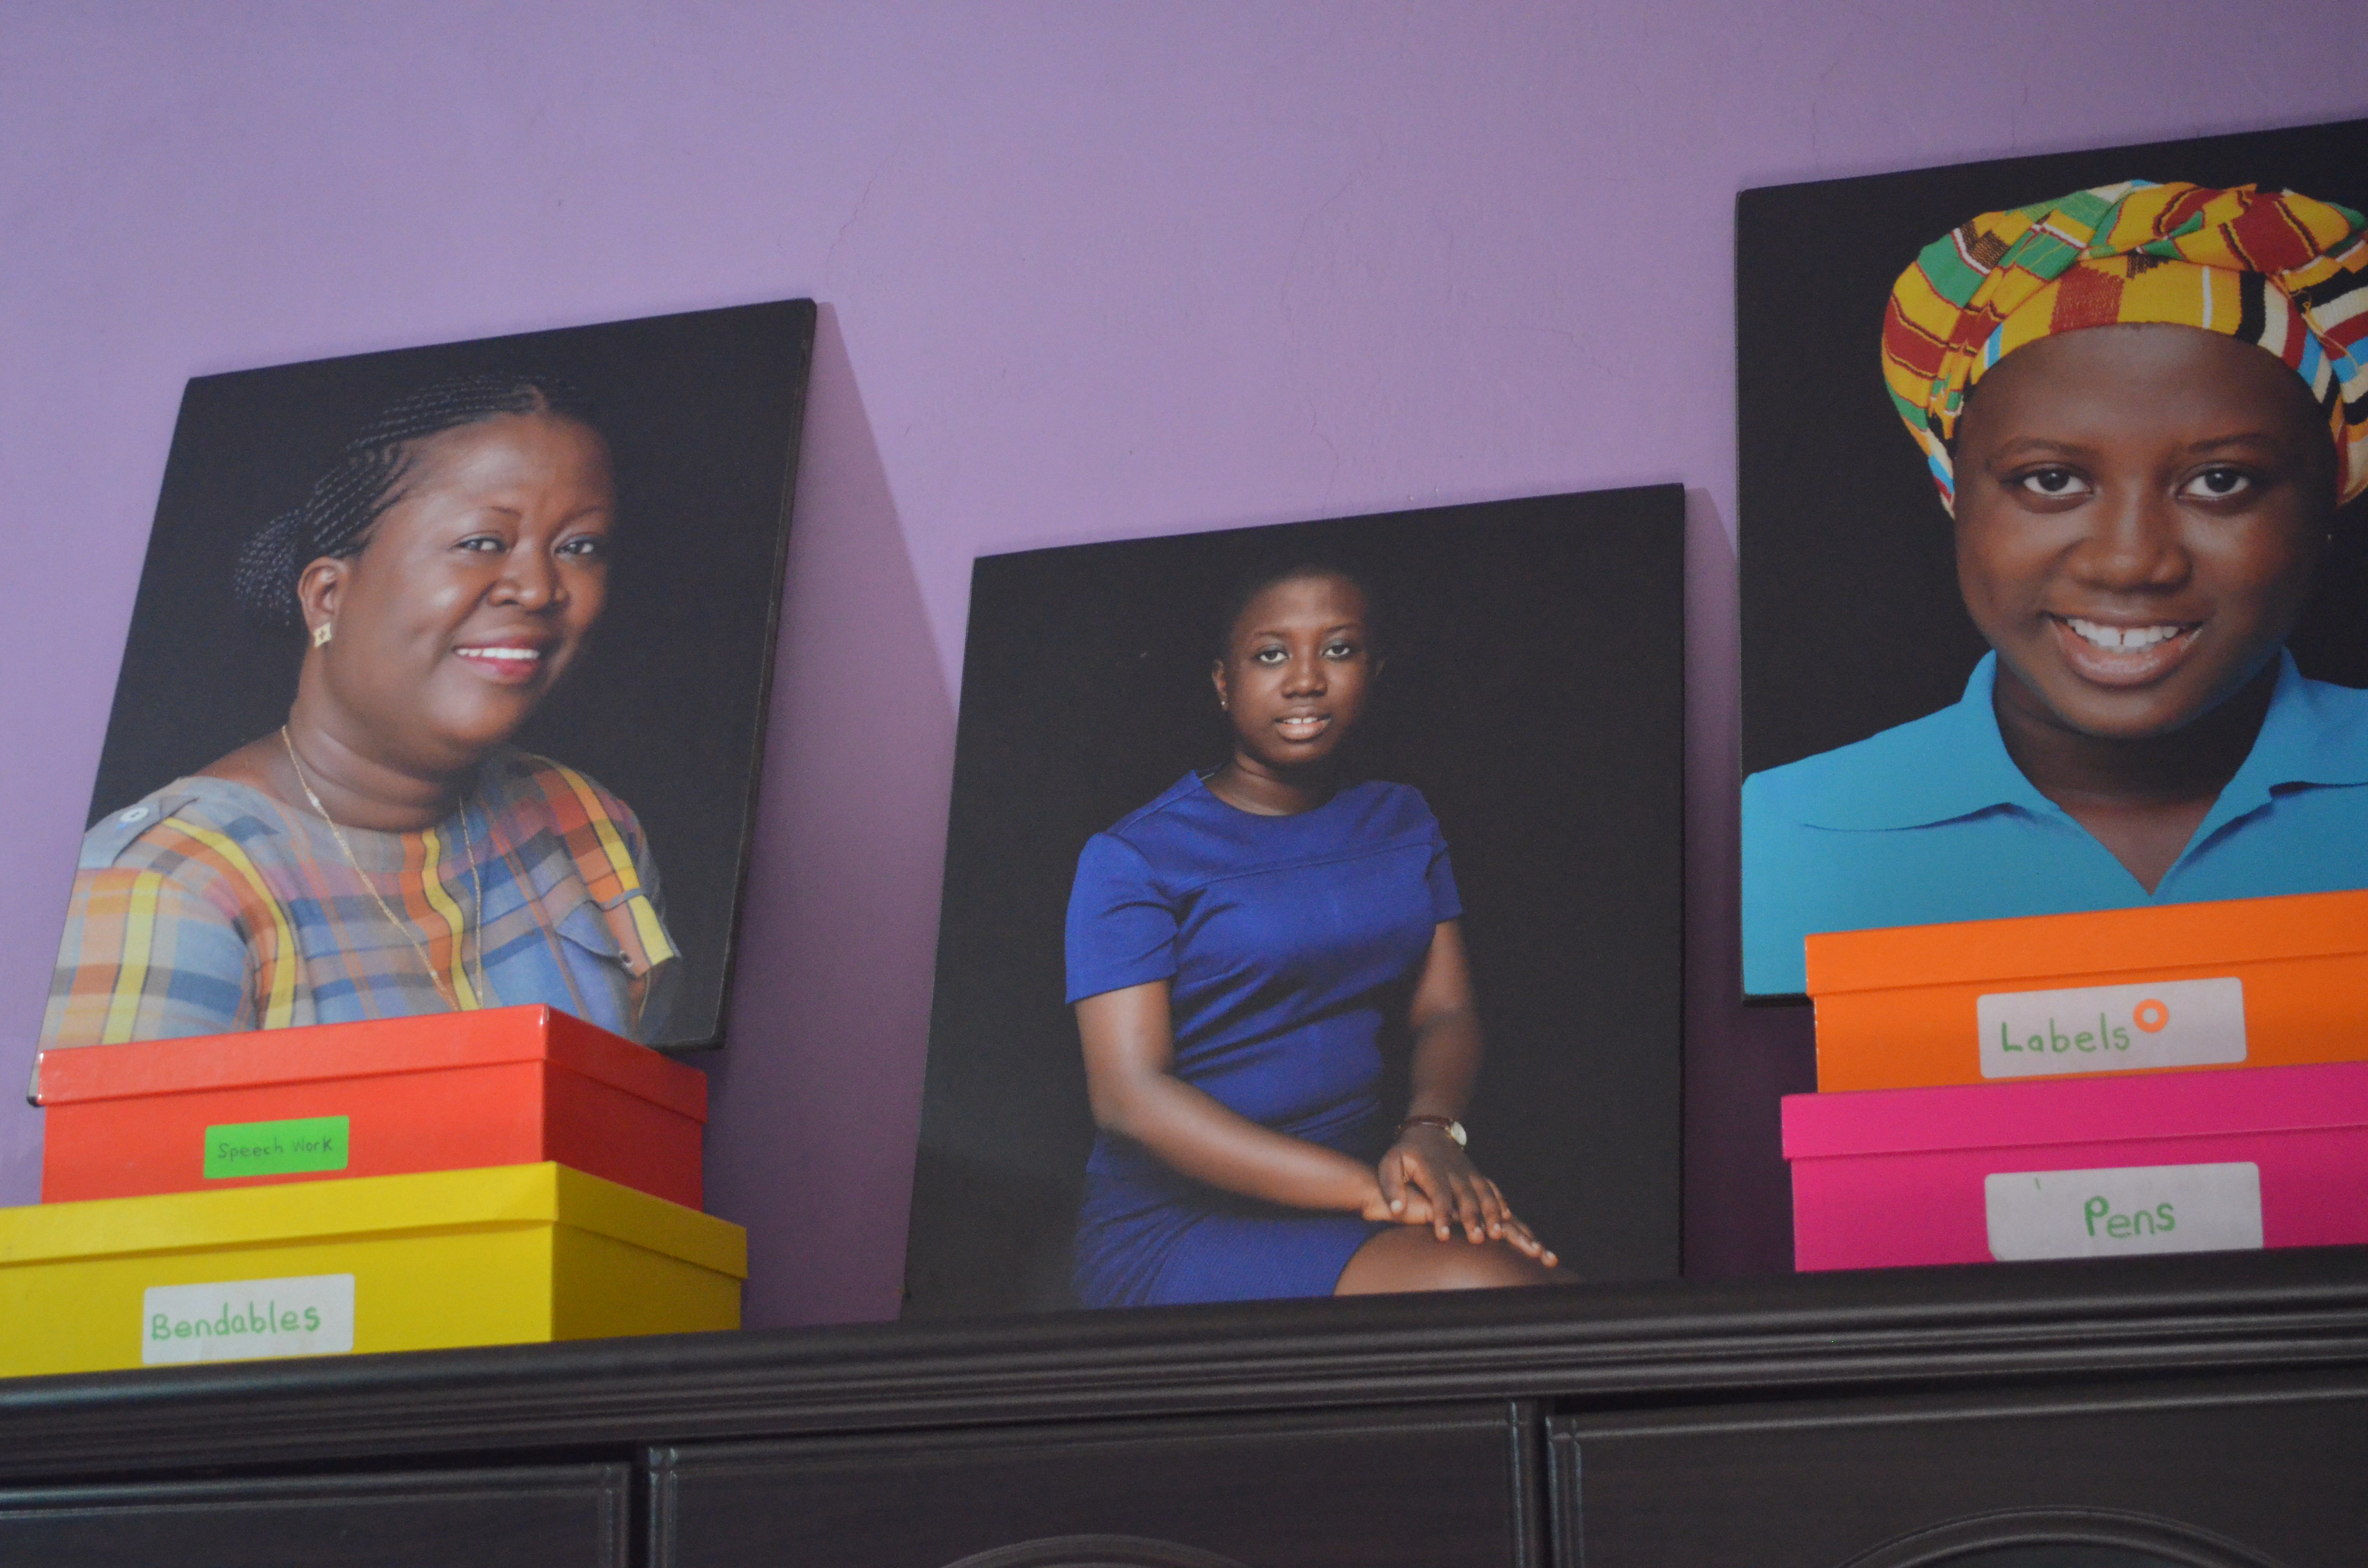 Renata's family portrait, amongst the other women of her family.